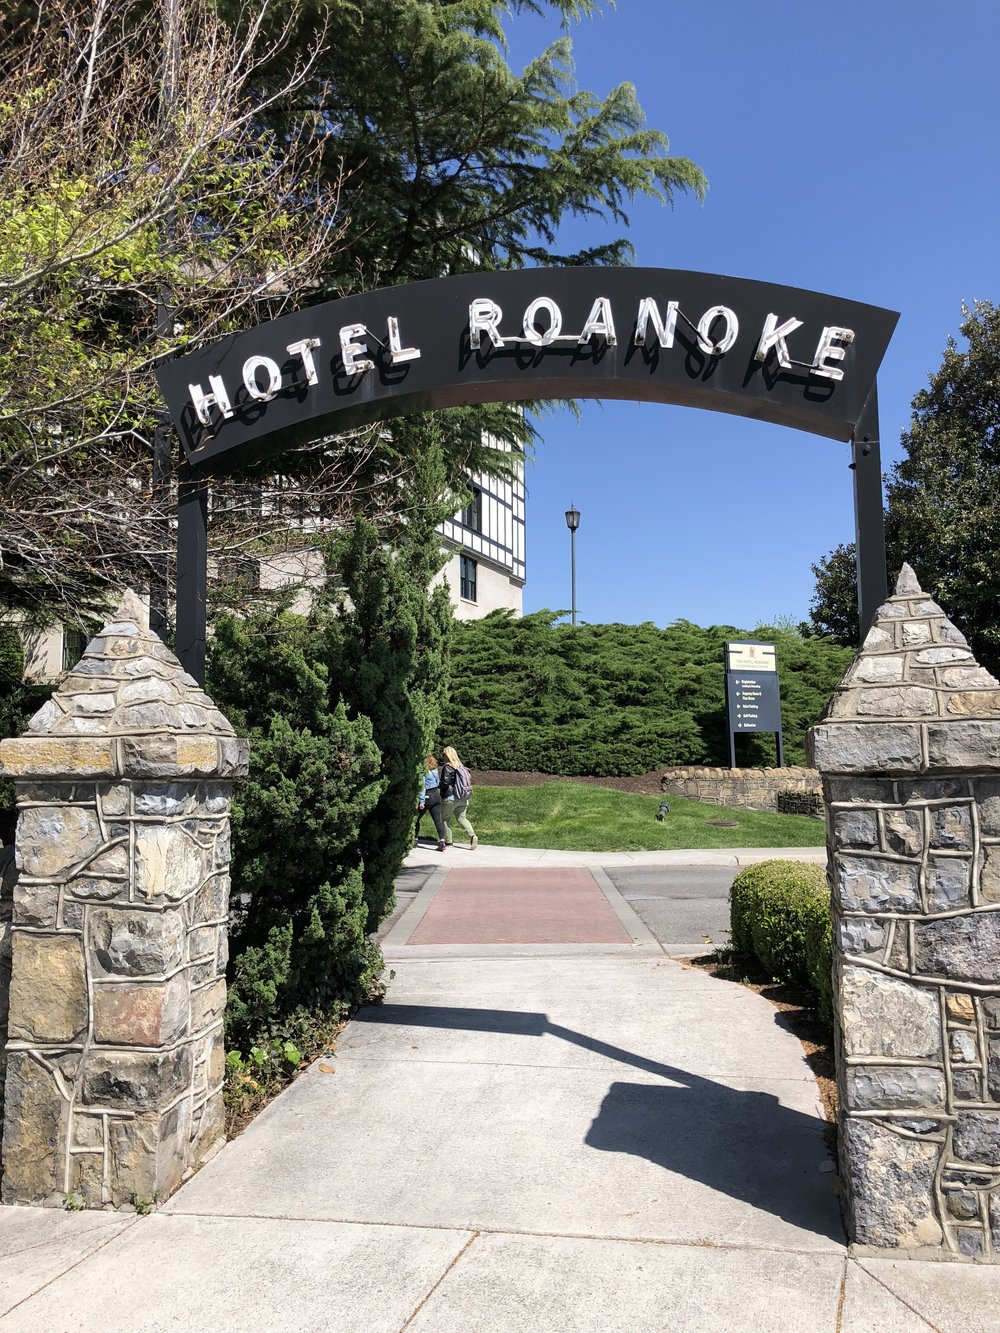 The entrance to Hotel Roanoke